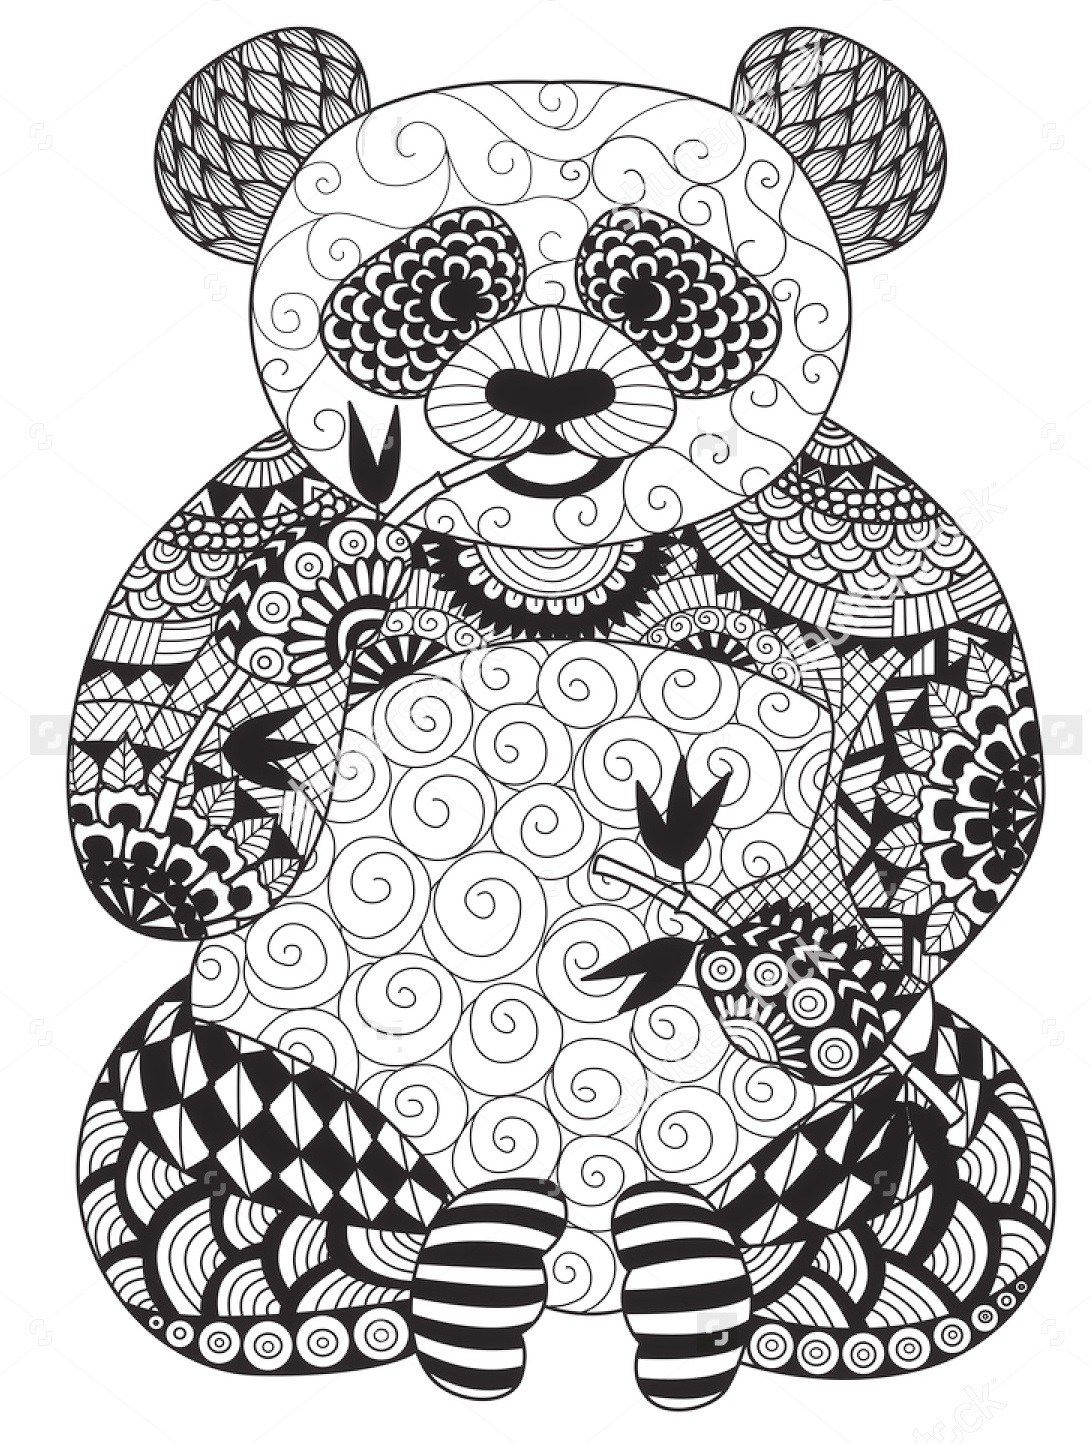 vector-zentangle-panda-coloring-page | Adult coloring | Pinterest